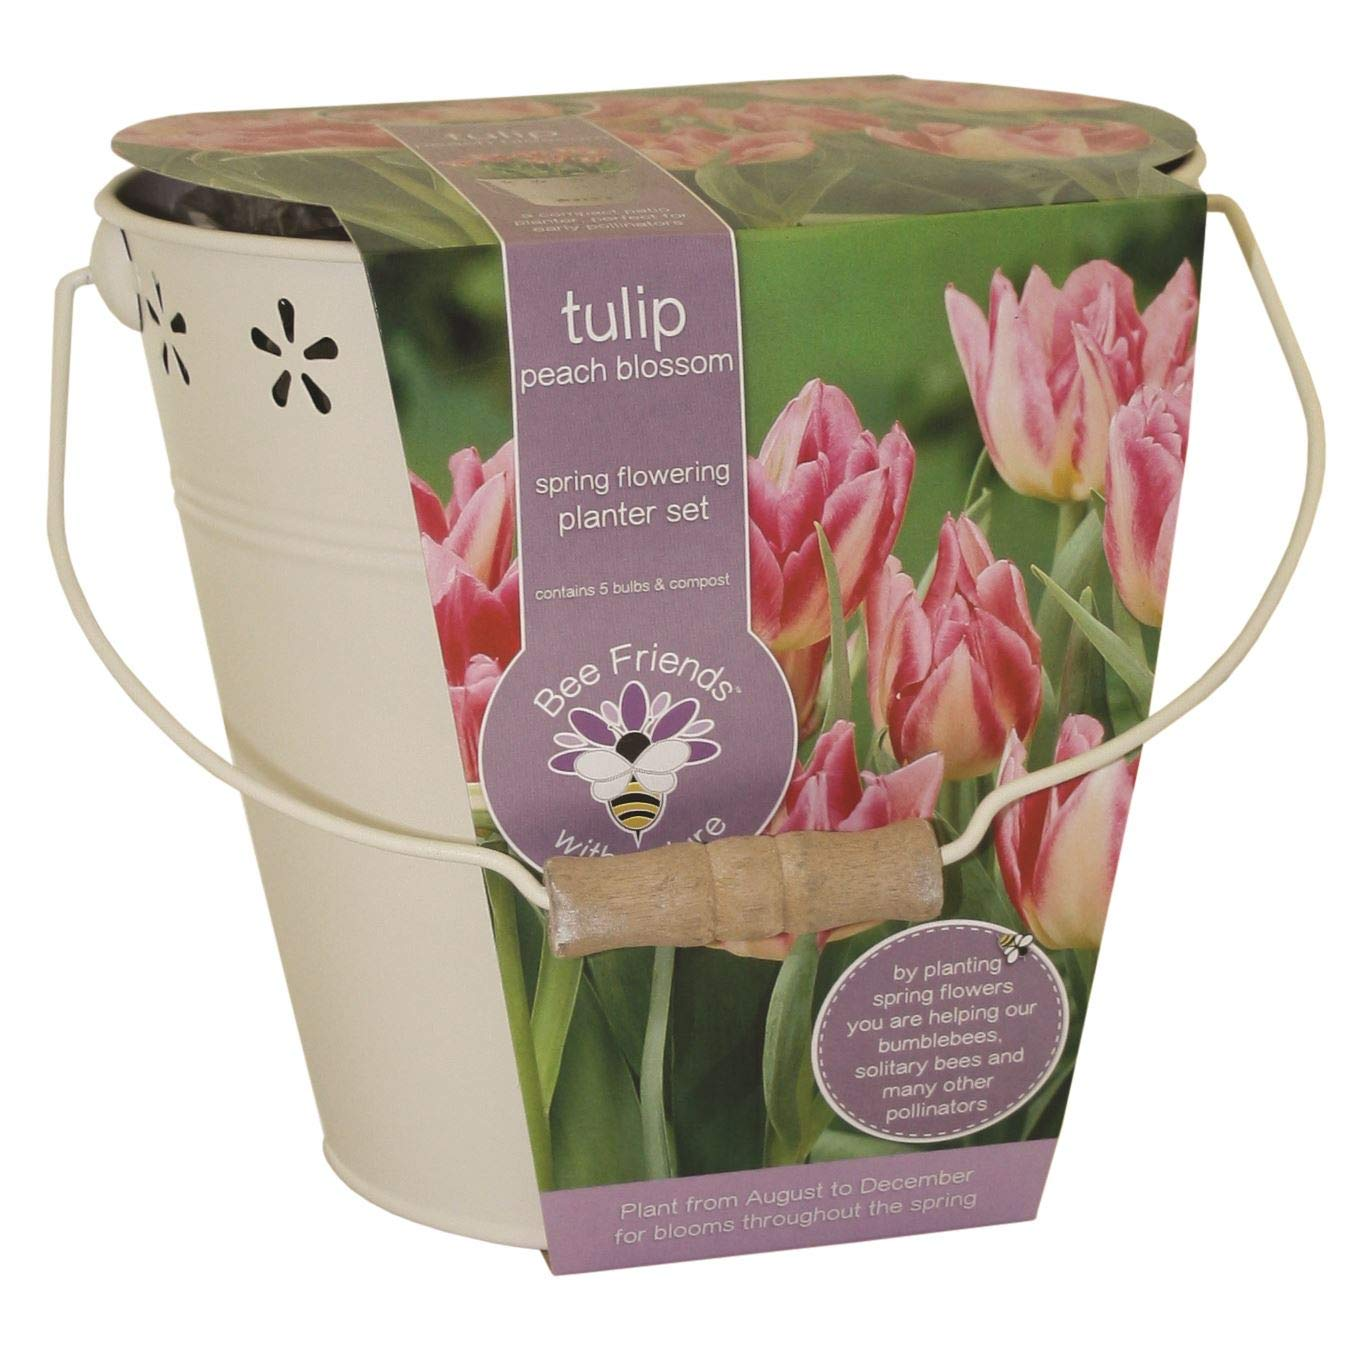 Bees Friends Tulip - Peach Blossom - Bulbs Spring Flower Bucket Growing Kit GPlants